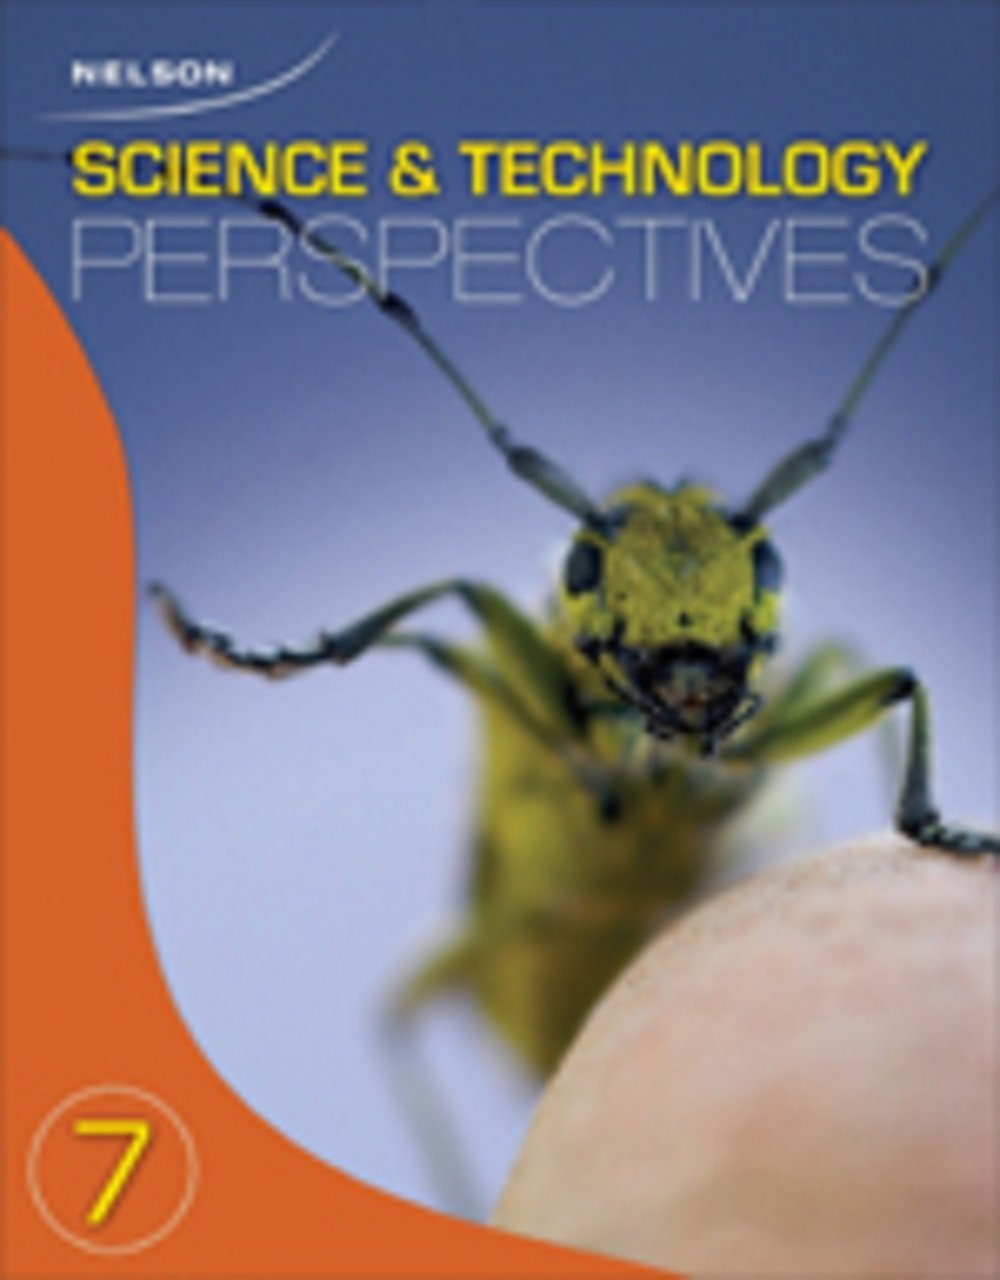 Nelson Science And Technology Perspectives 7 Doug Fraser Maurice Digiuseppe Christy Hayhoe 9780176325152 Amazon Com Books [ 1280 x 1000 Pixel ]